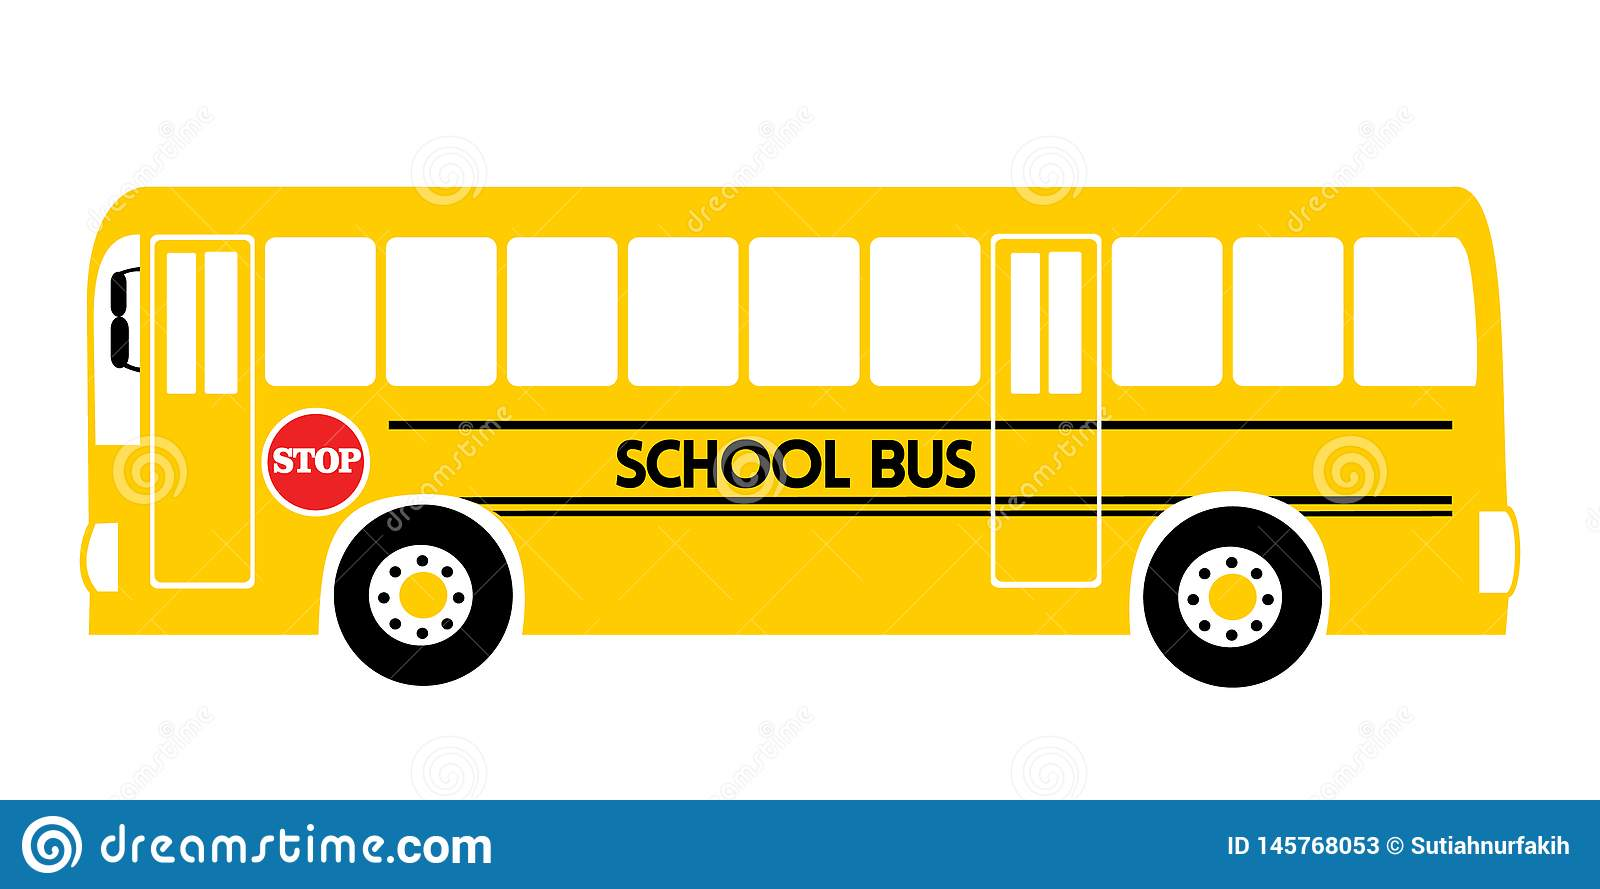 School bus yellow illustration vector